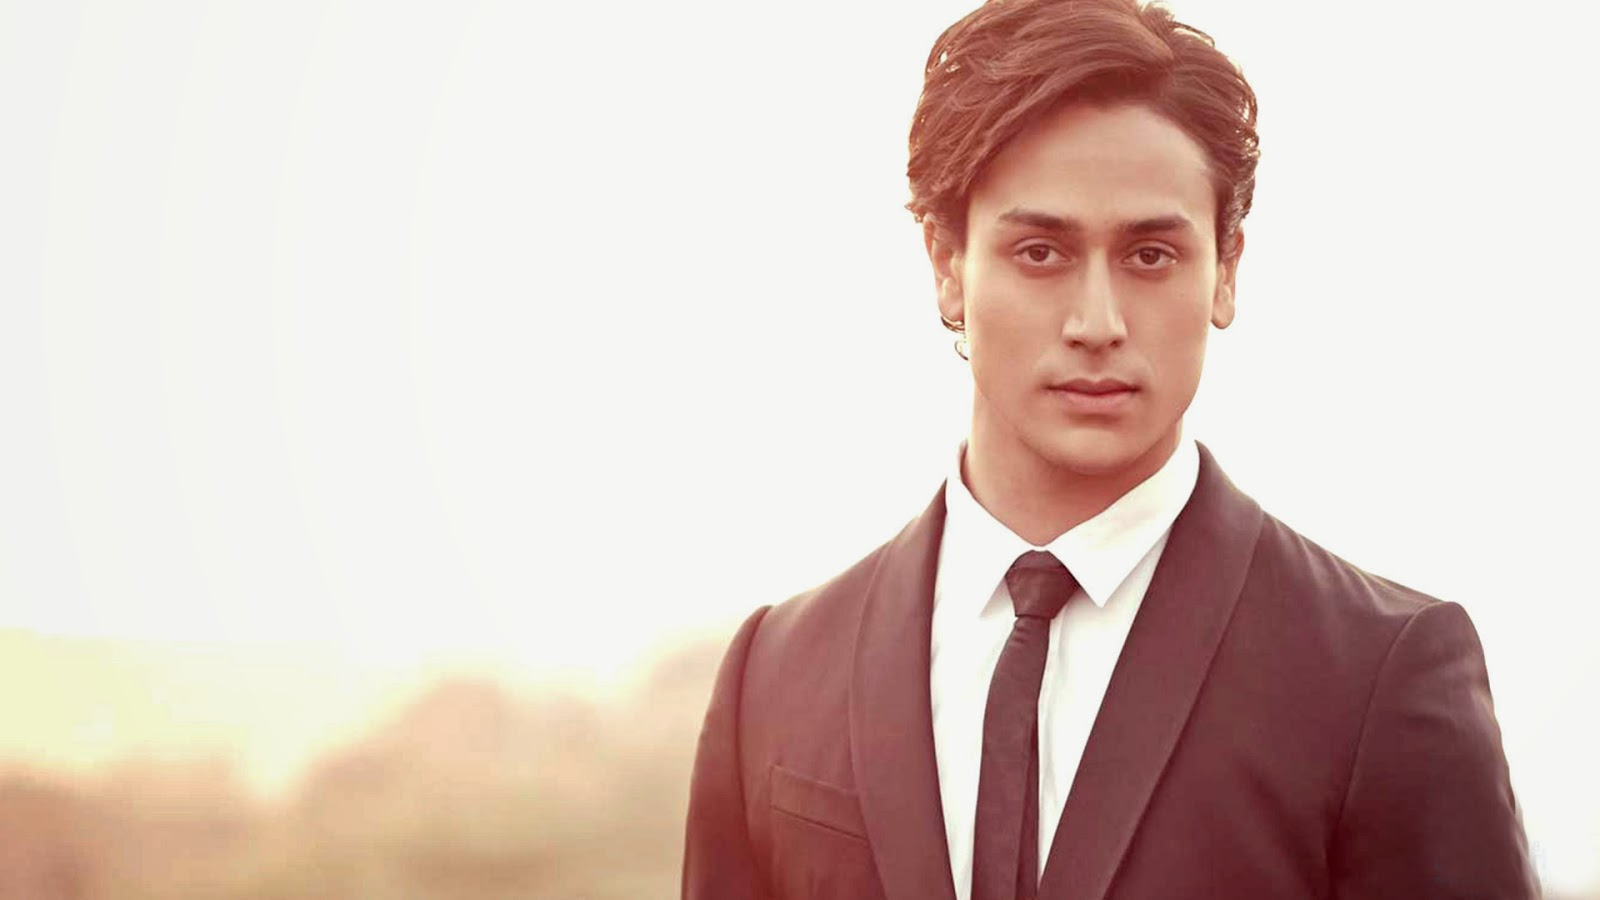 tiger shroff hd wallpapers | imwallpapers - free hd desktop